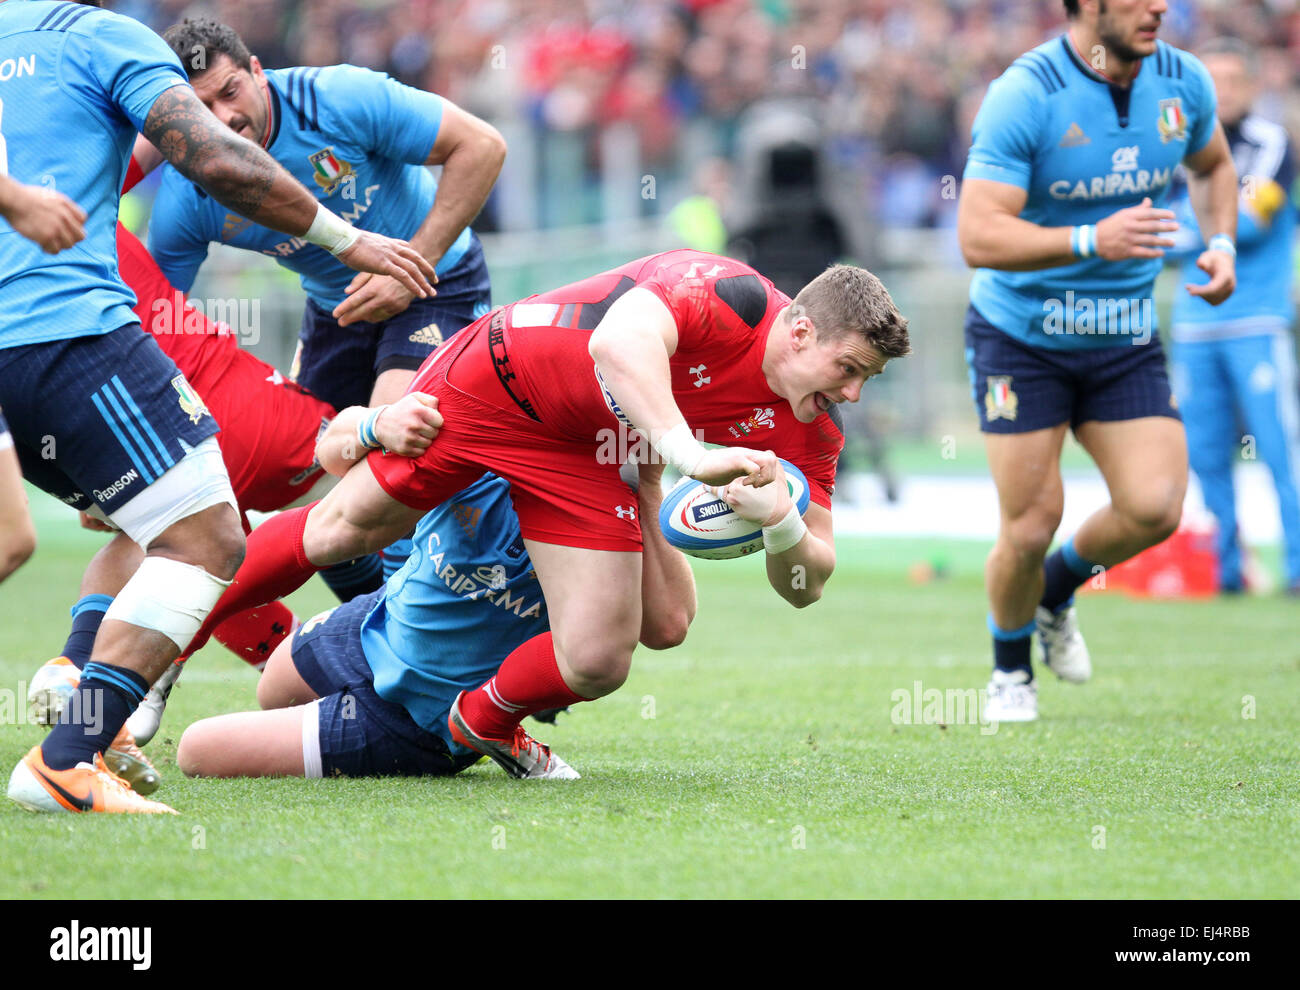 Rome, Italy. 21st March, 2015. Wales's player Scott Williams fights for the ball during the Six Nations international - Stock Image